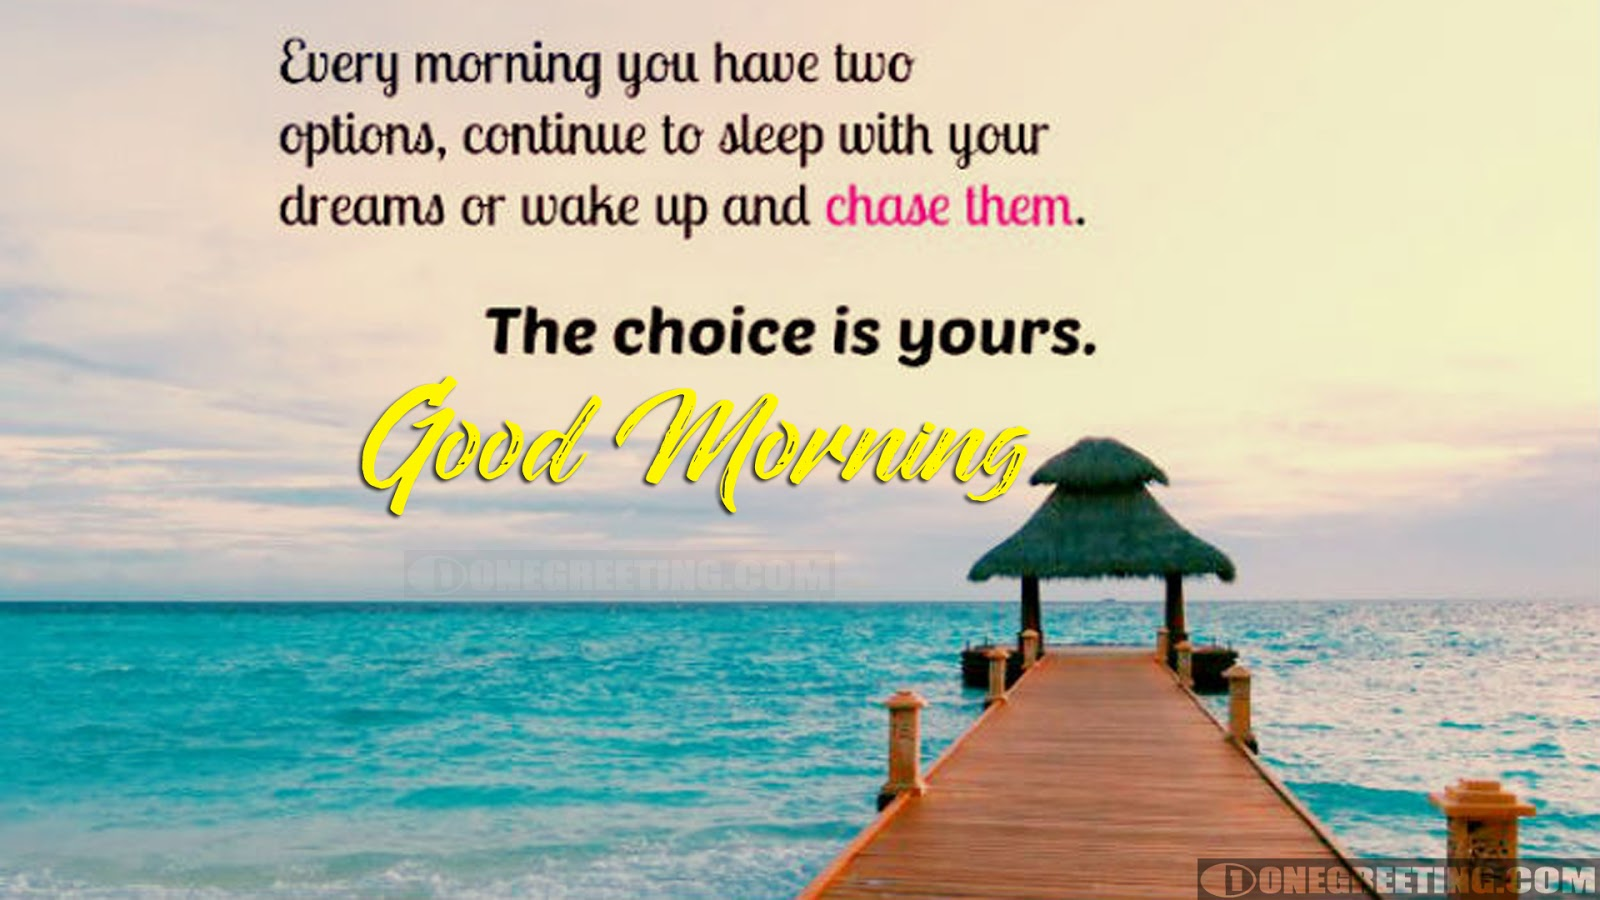 Inspirational Good Morning Messages Motivational Quotes And Wishes